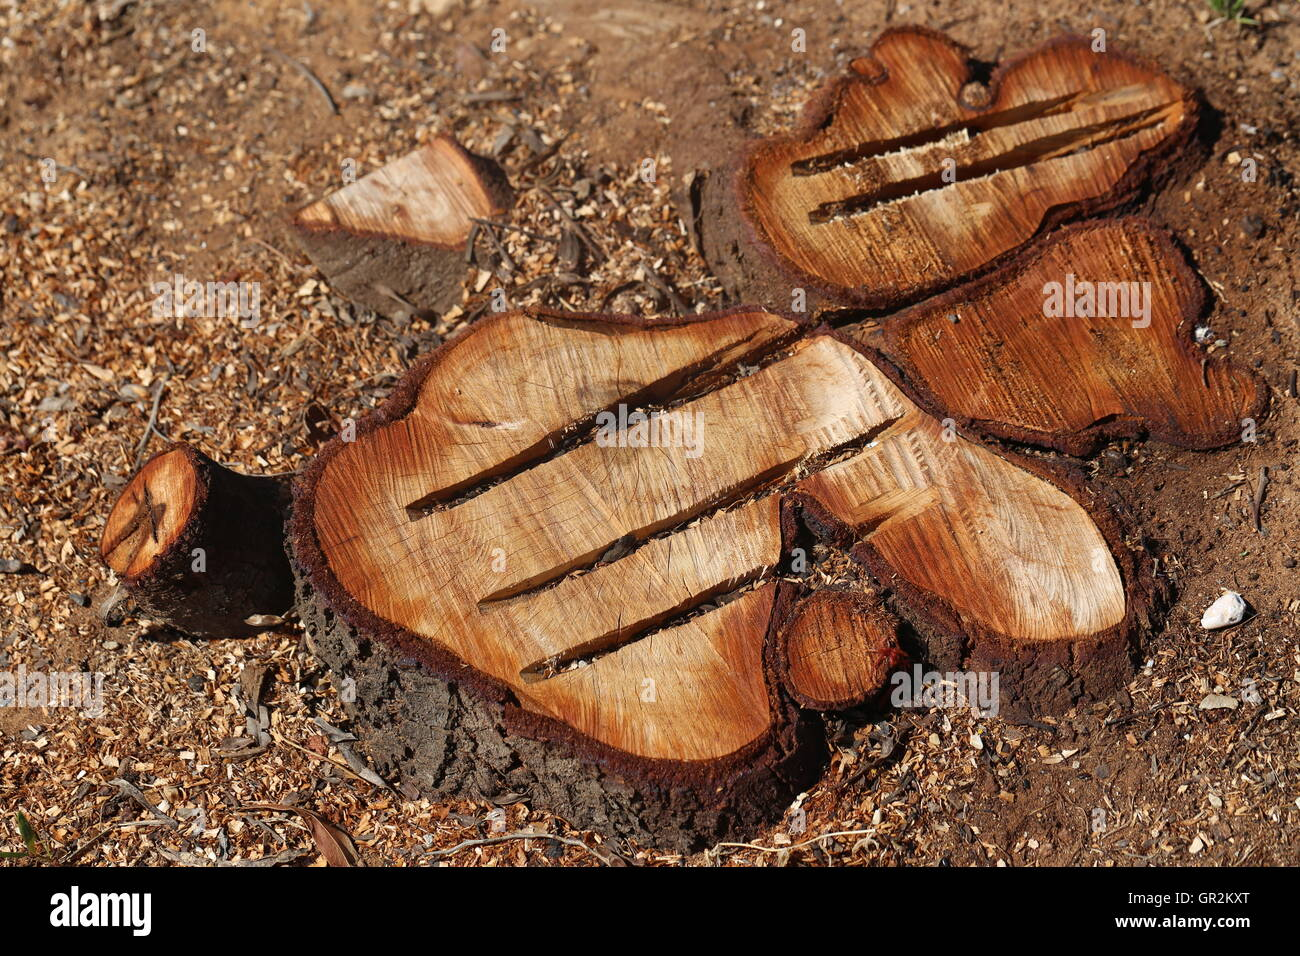 Cut Off Trees. Chopped trees with deep cracks. Group of cut off trunks of trees in the field. - Stock Image